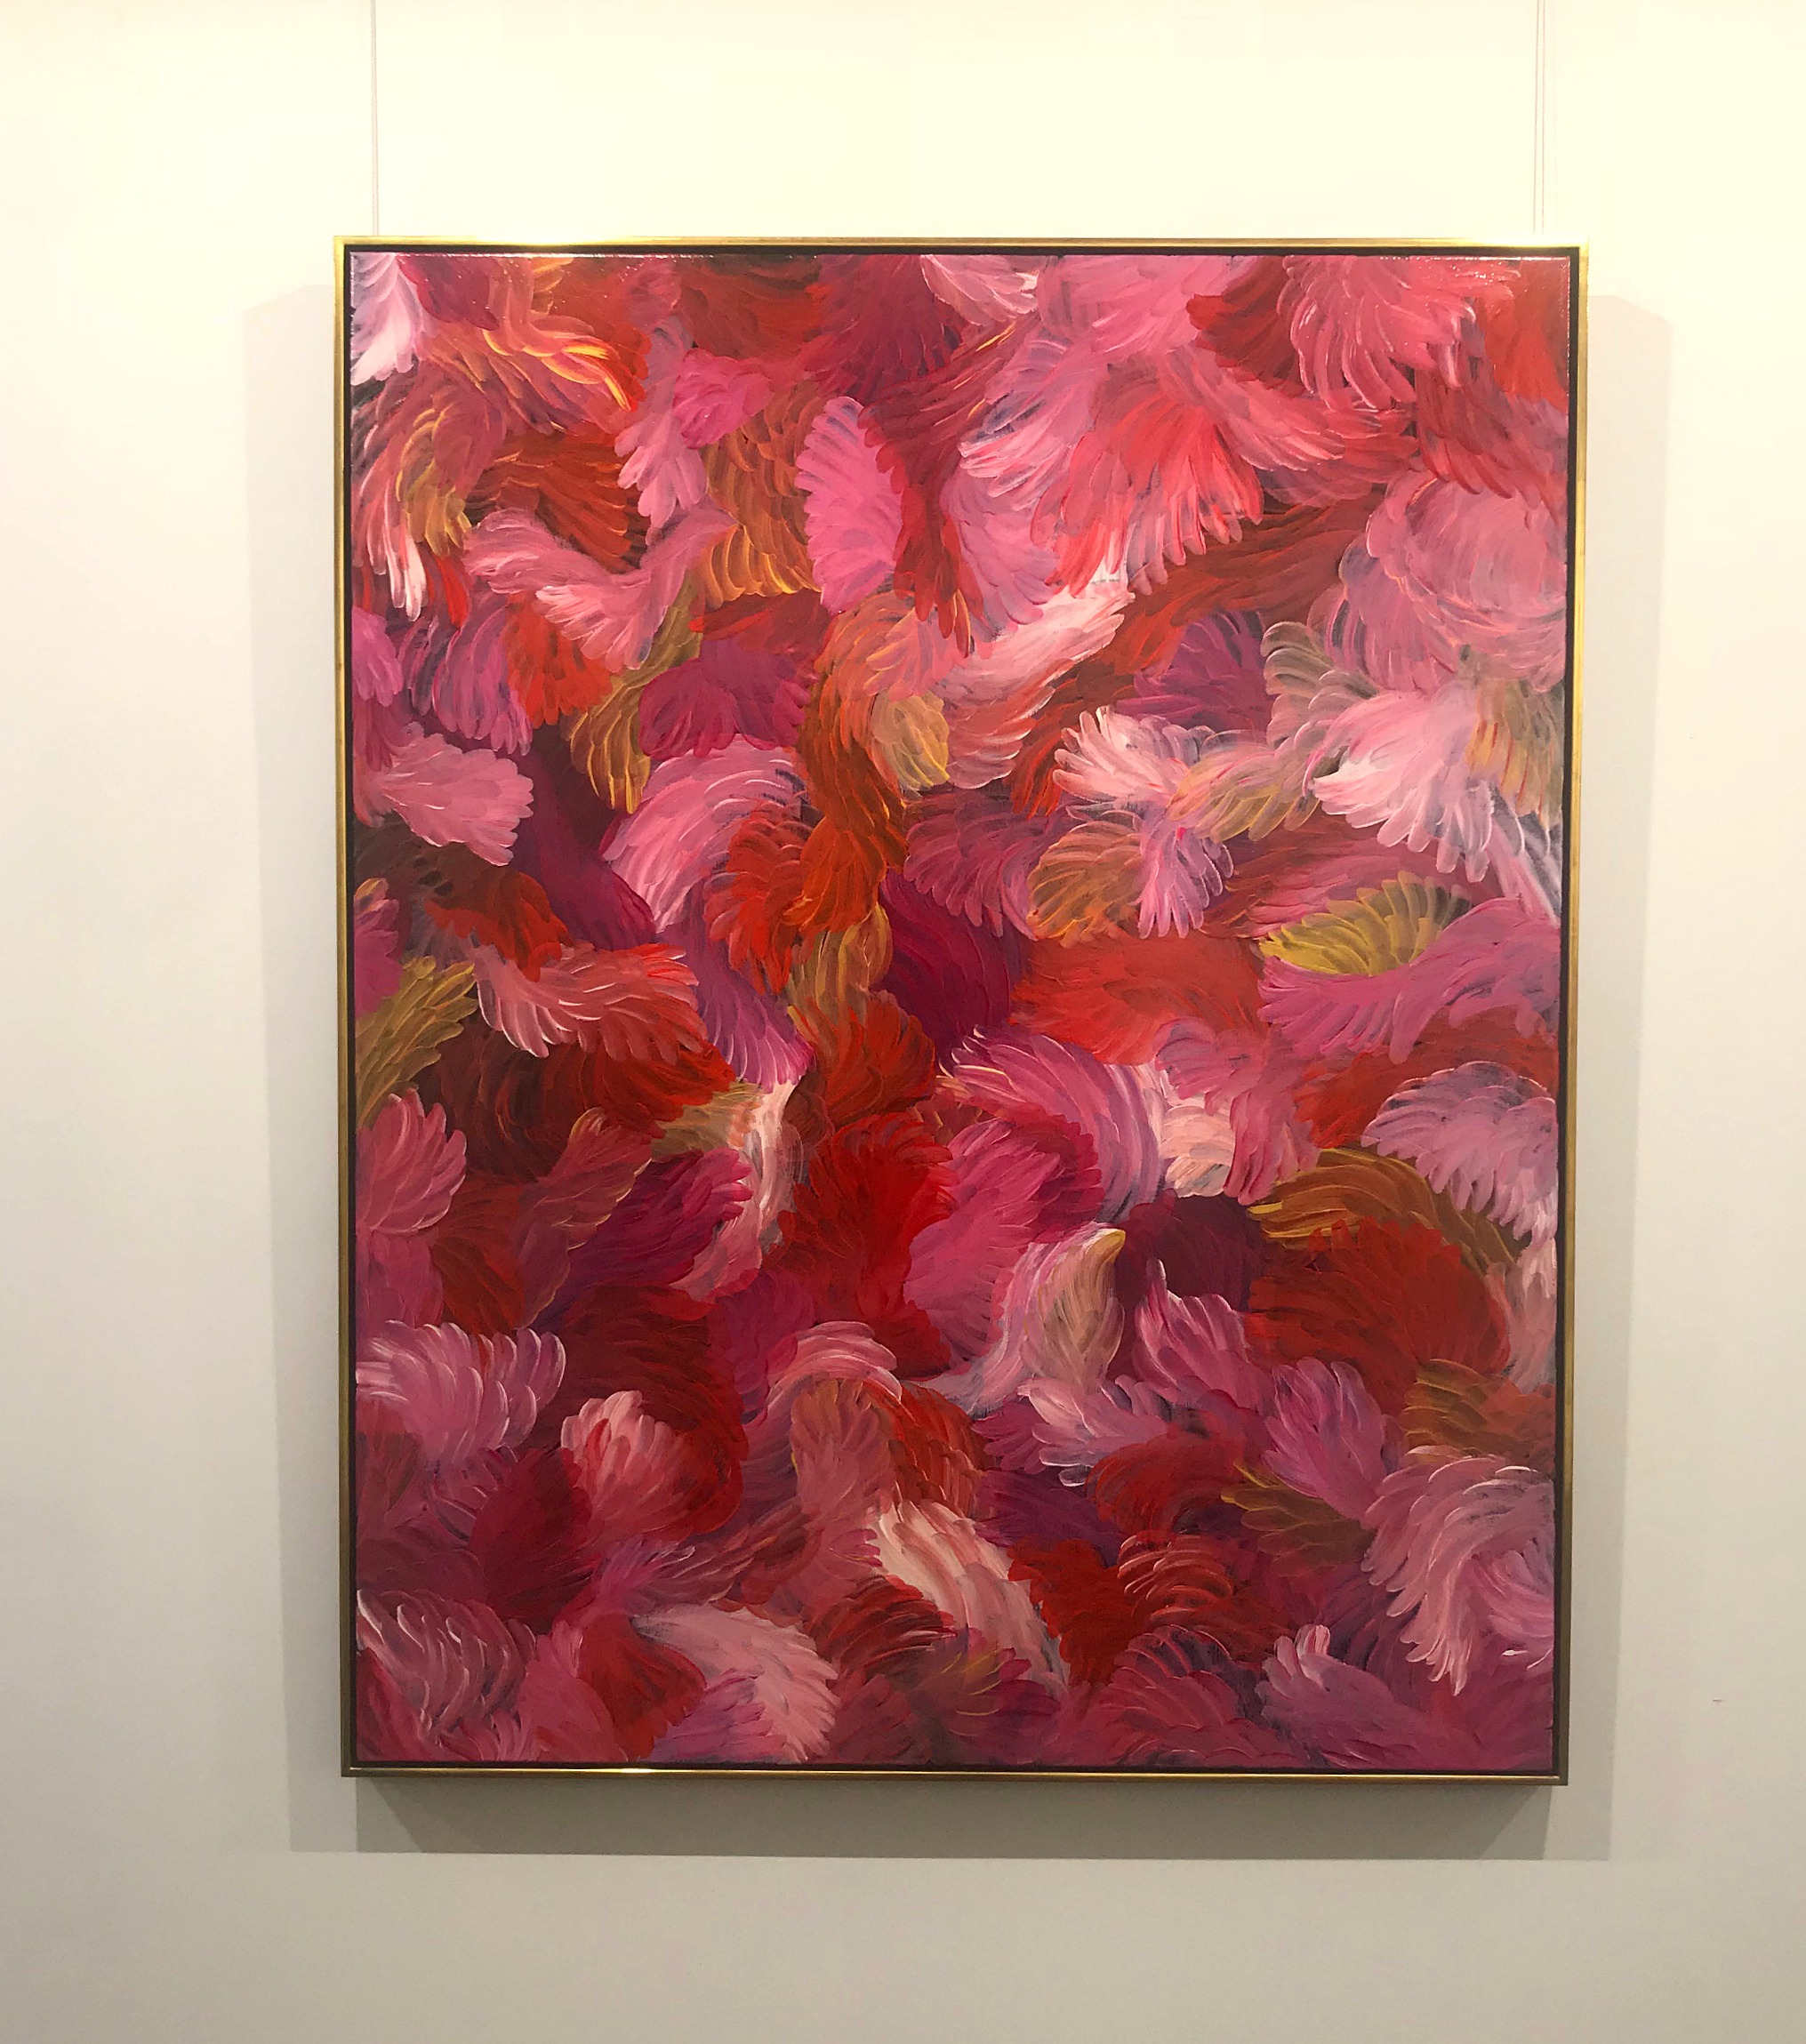 Above: Thierry B.  La Vie En Rose , 2018, Synthetic Polymer Paint on Linen, 152 x 122cm, custom-framed in water-gilded, 18-carat gold, $15,000